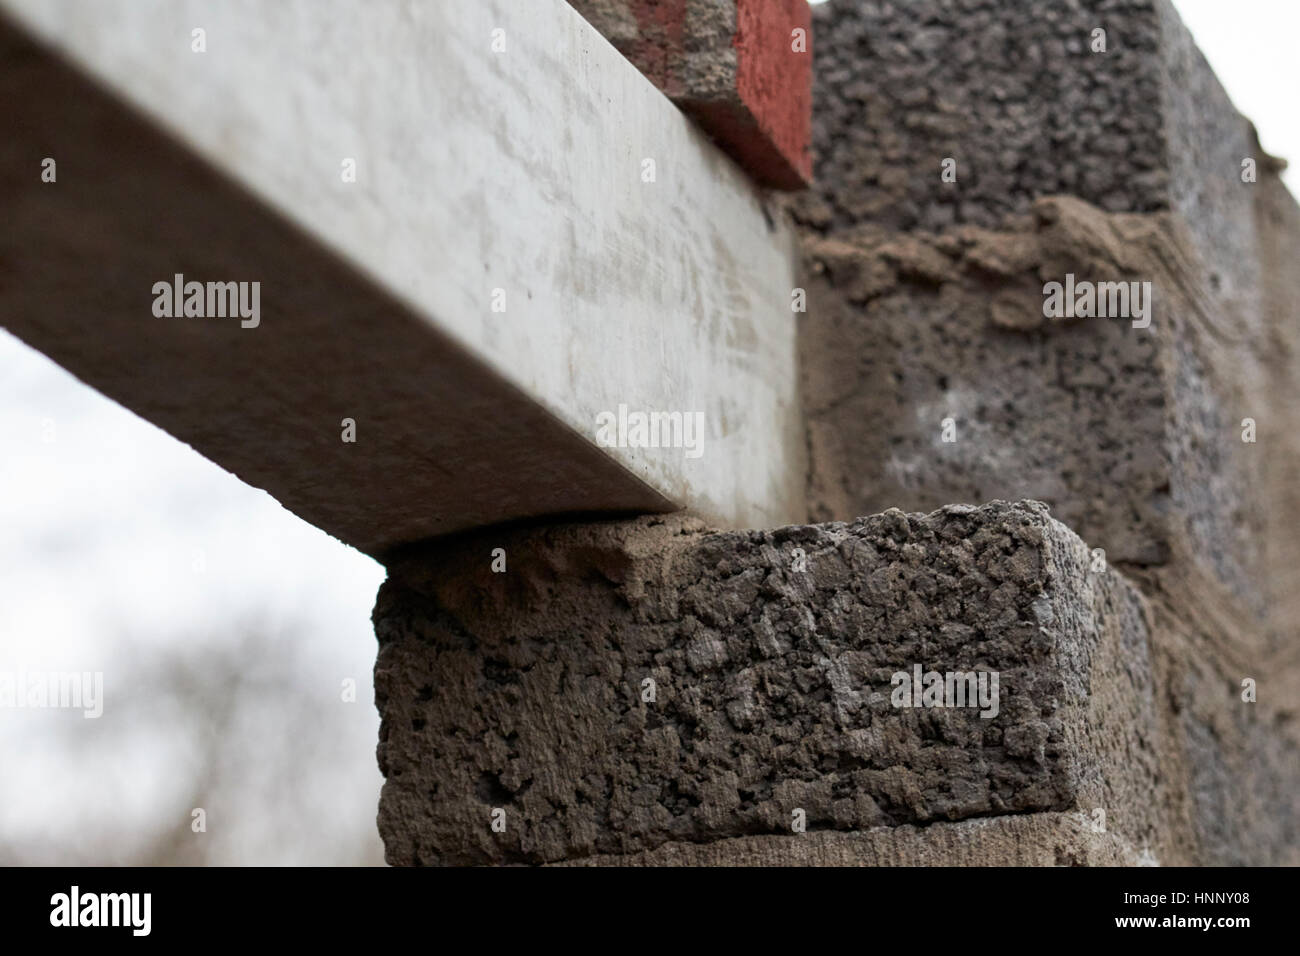 concrete lintel over door access in house extension - Stock Image